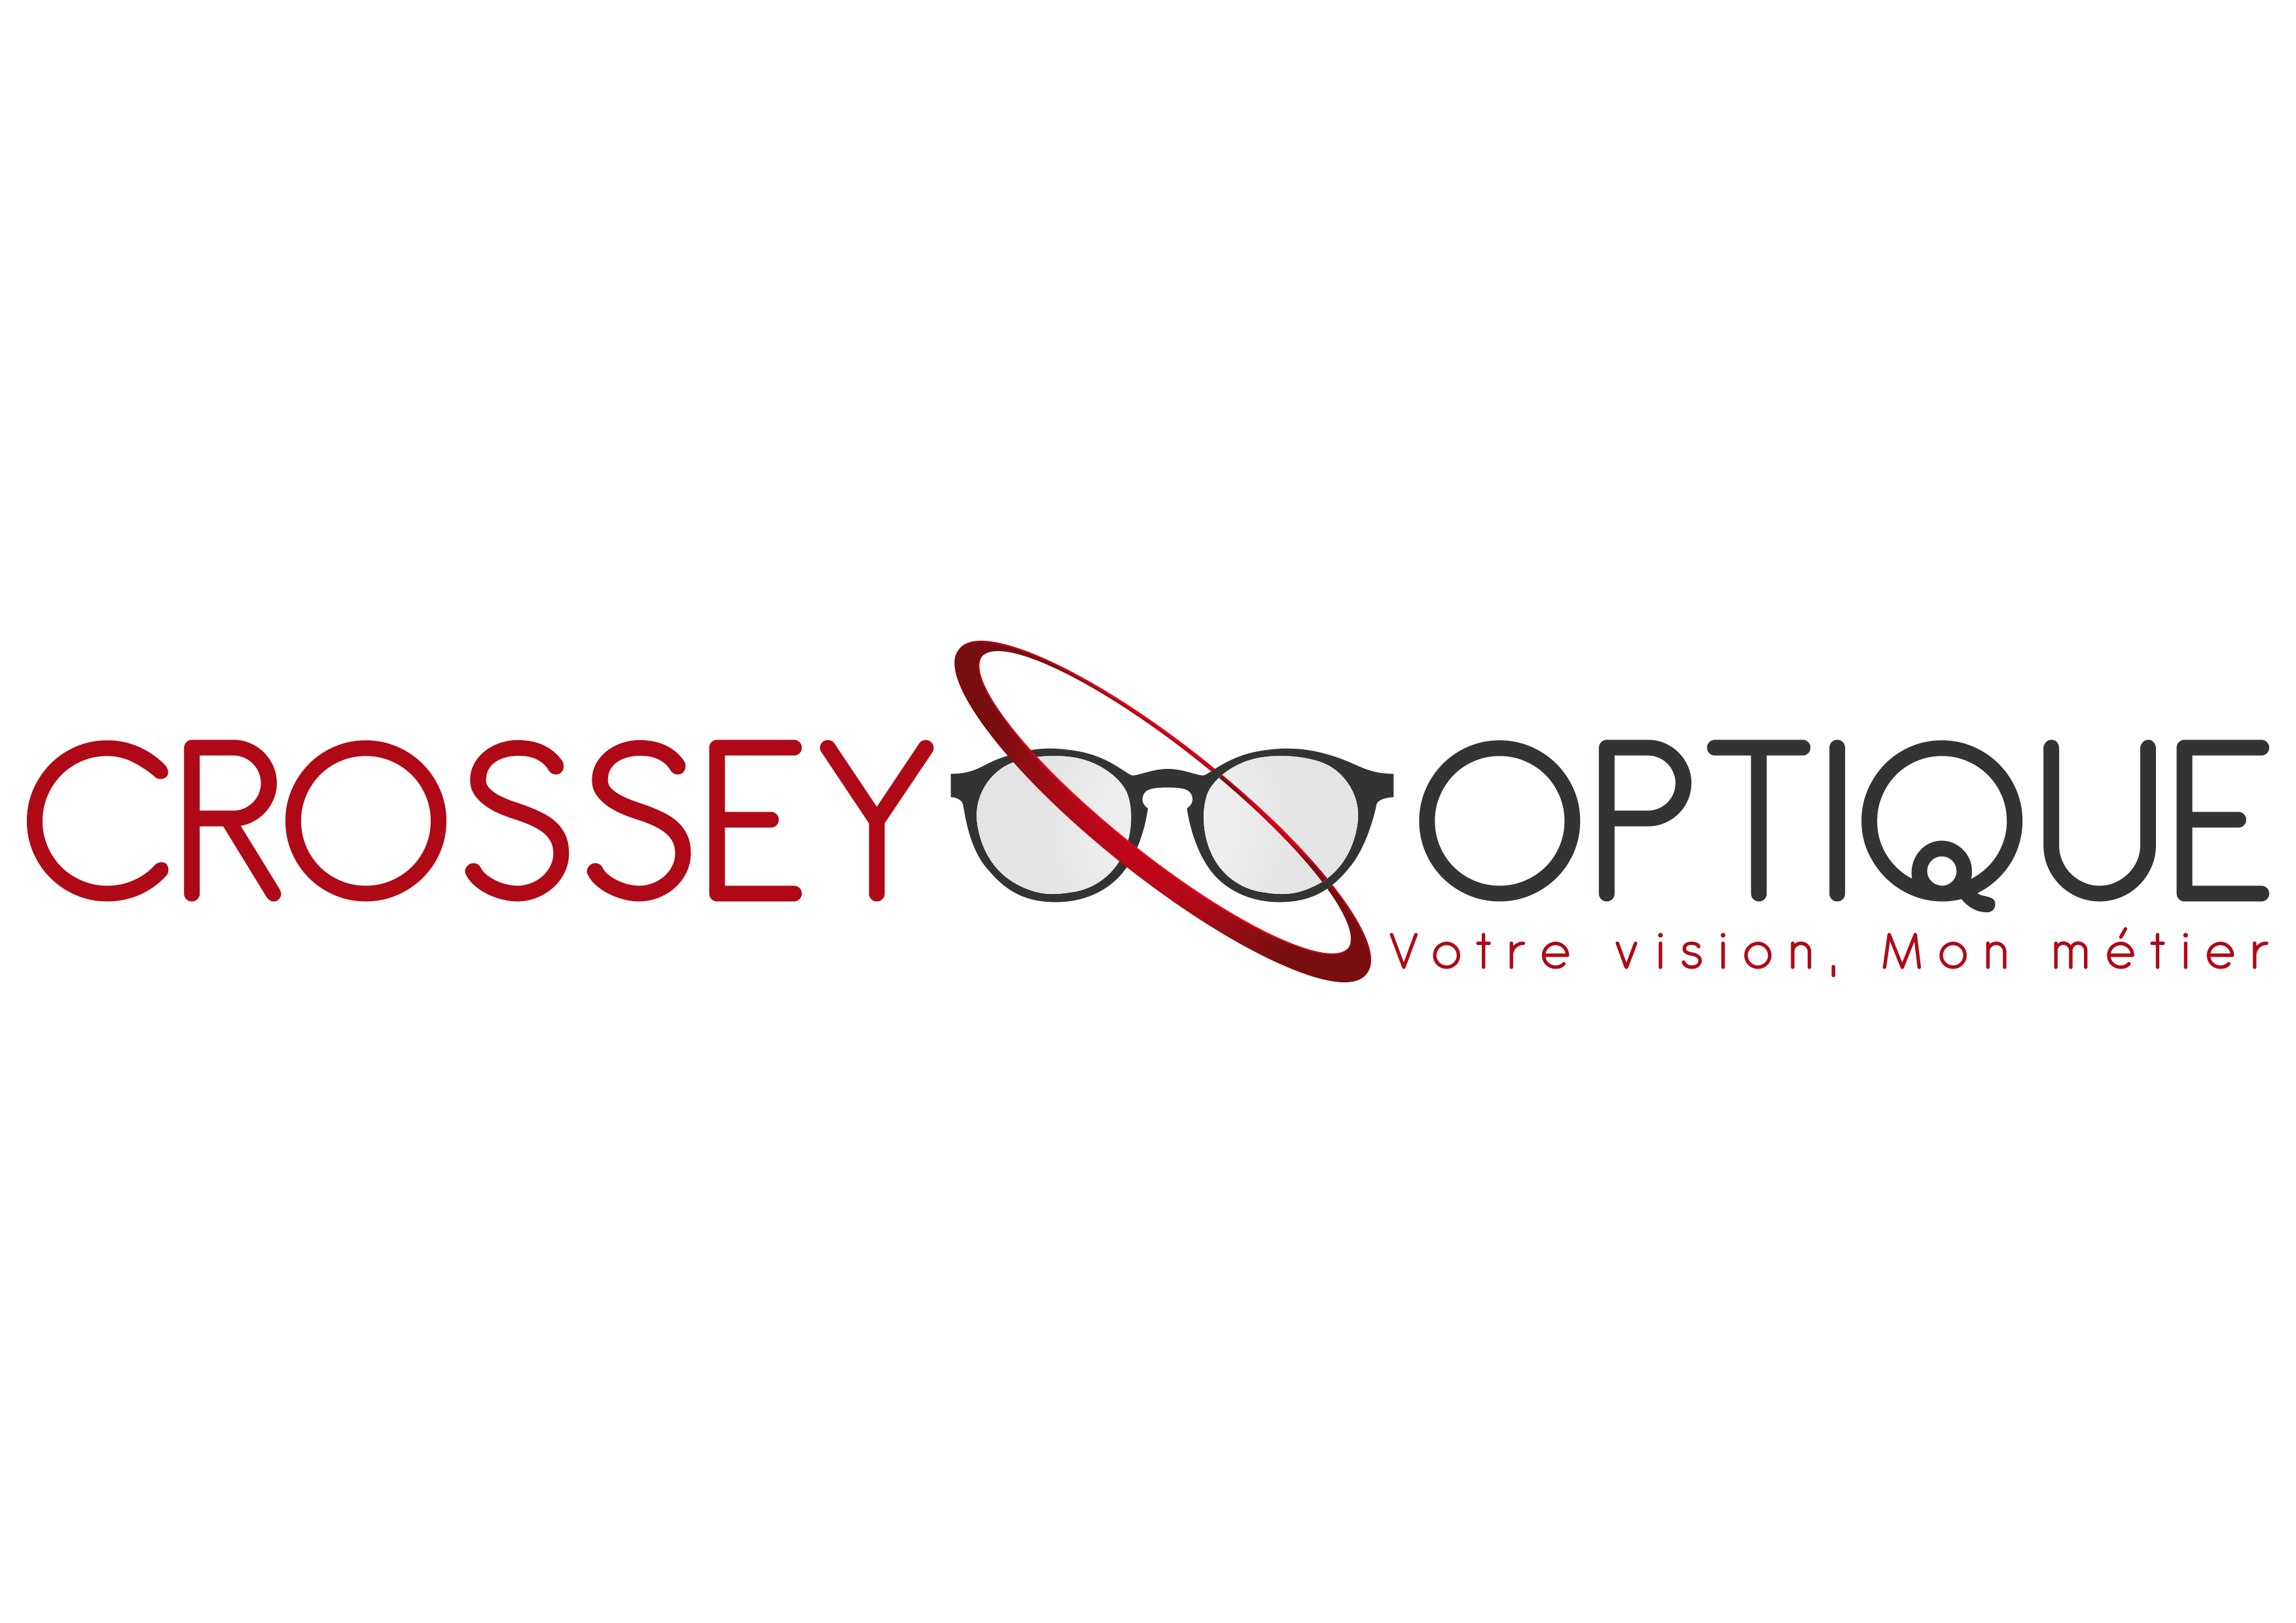 CROSSEY_OPTIQUE